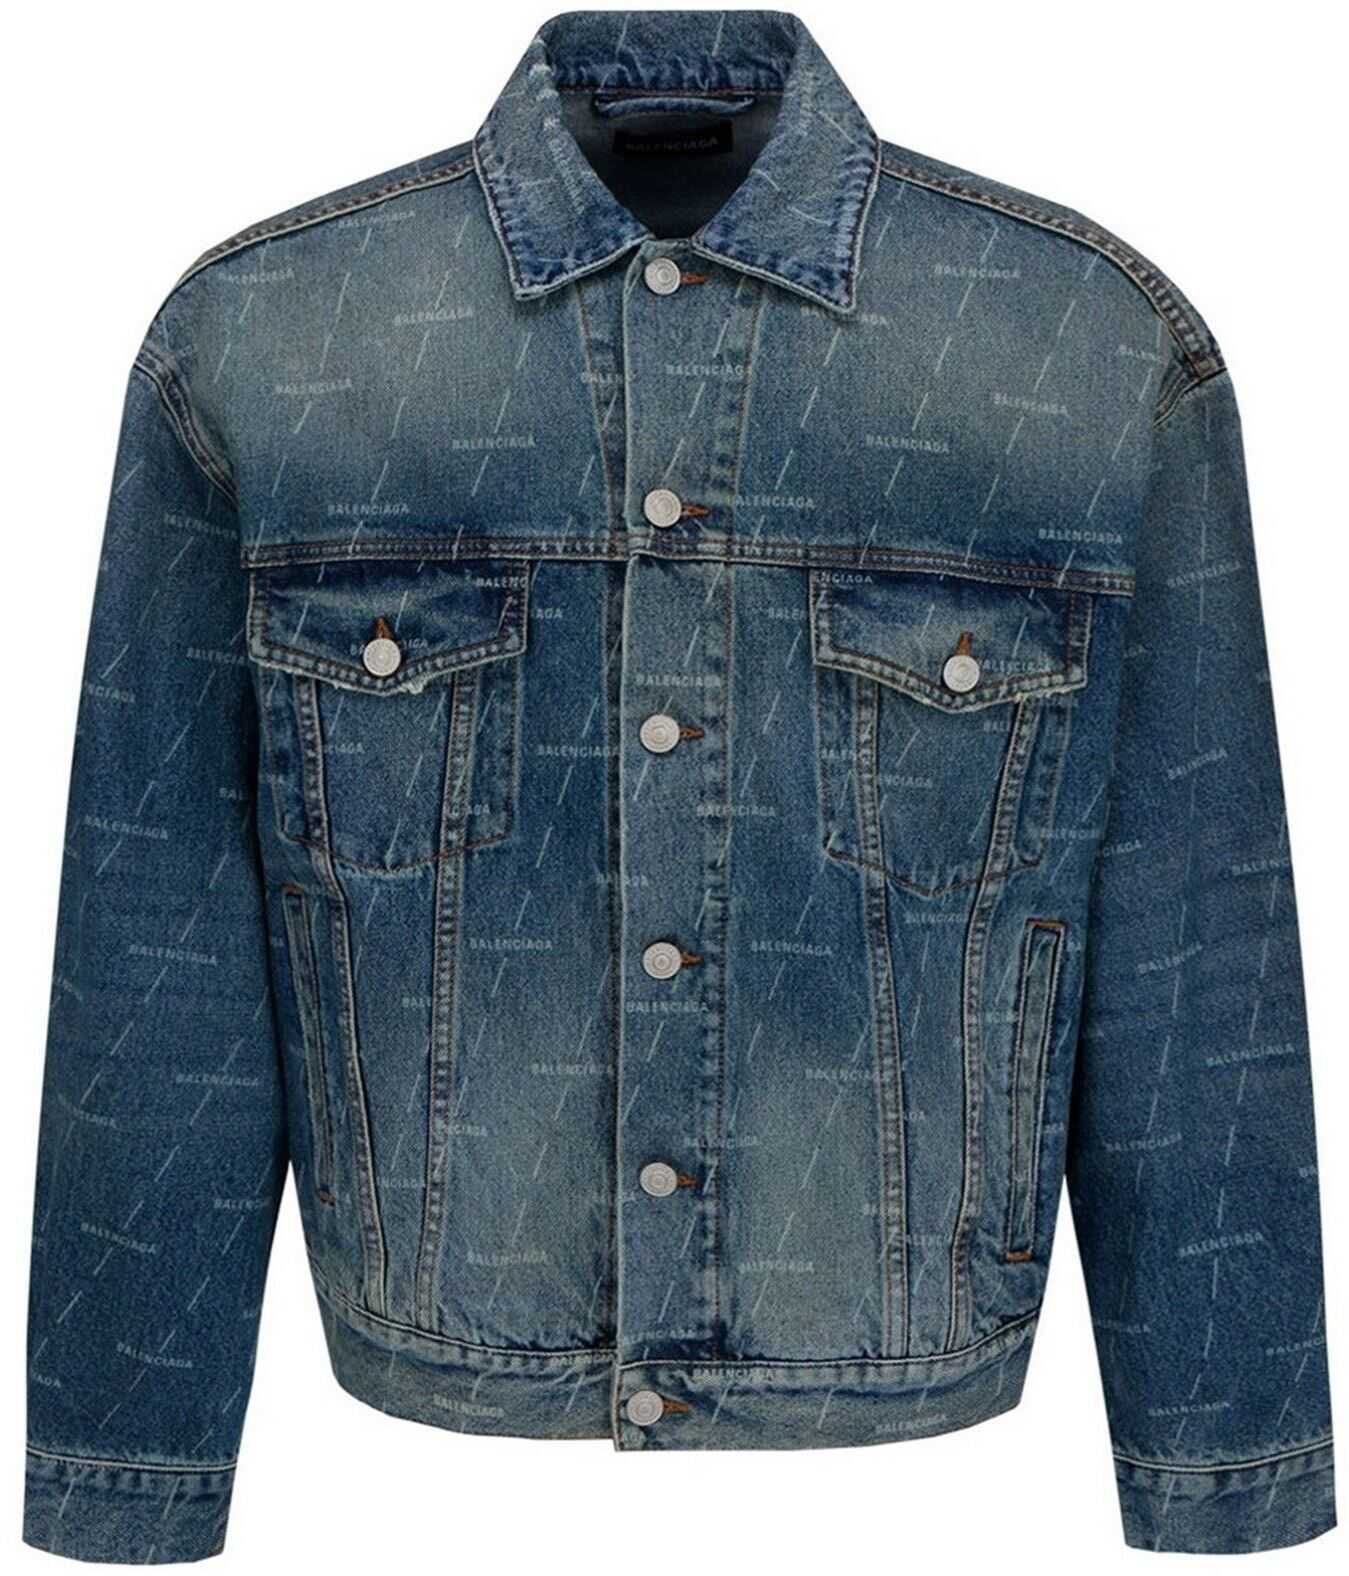 Balenciaga Logo Print Denim Jacket In Blue Blue imagine